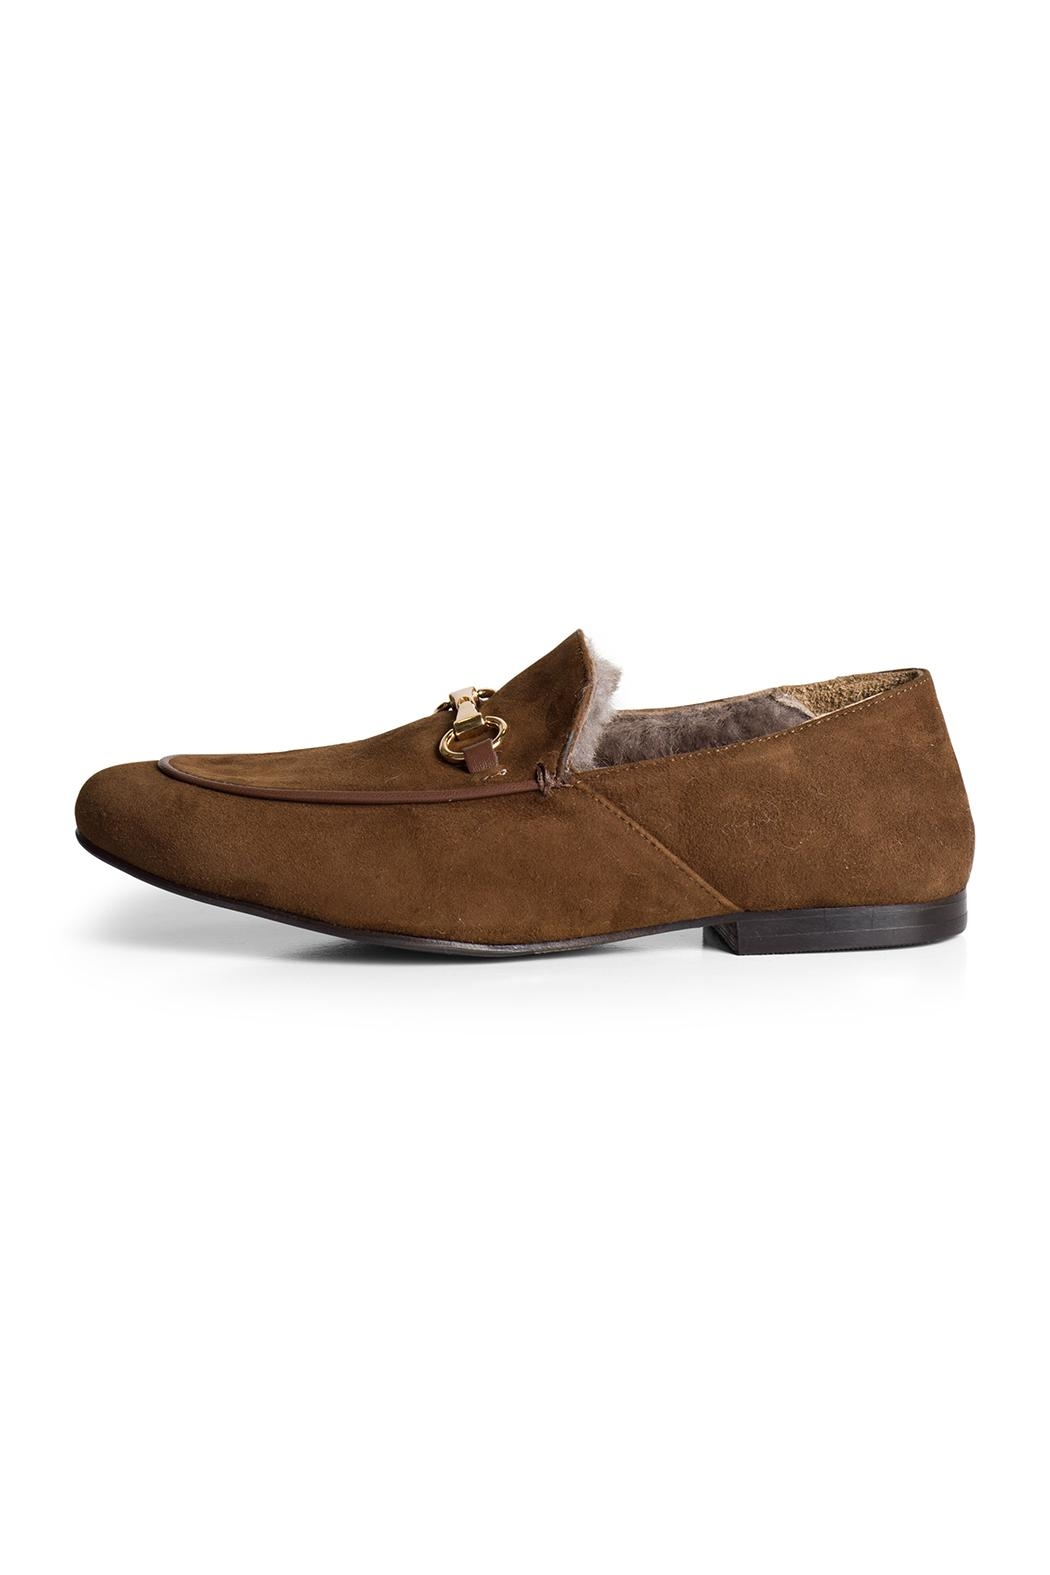 Pascucci Suede Wool-Lined Loafer - Main Image